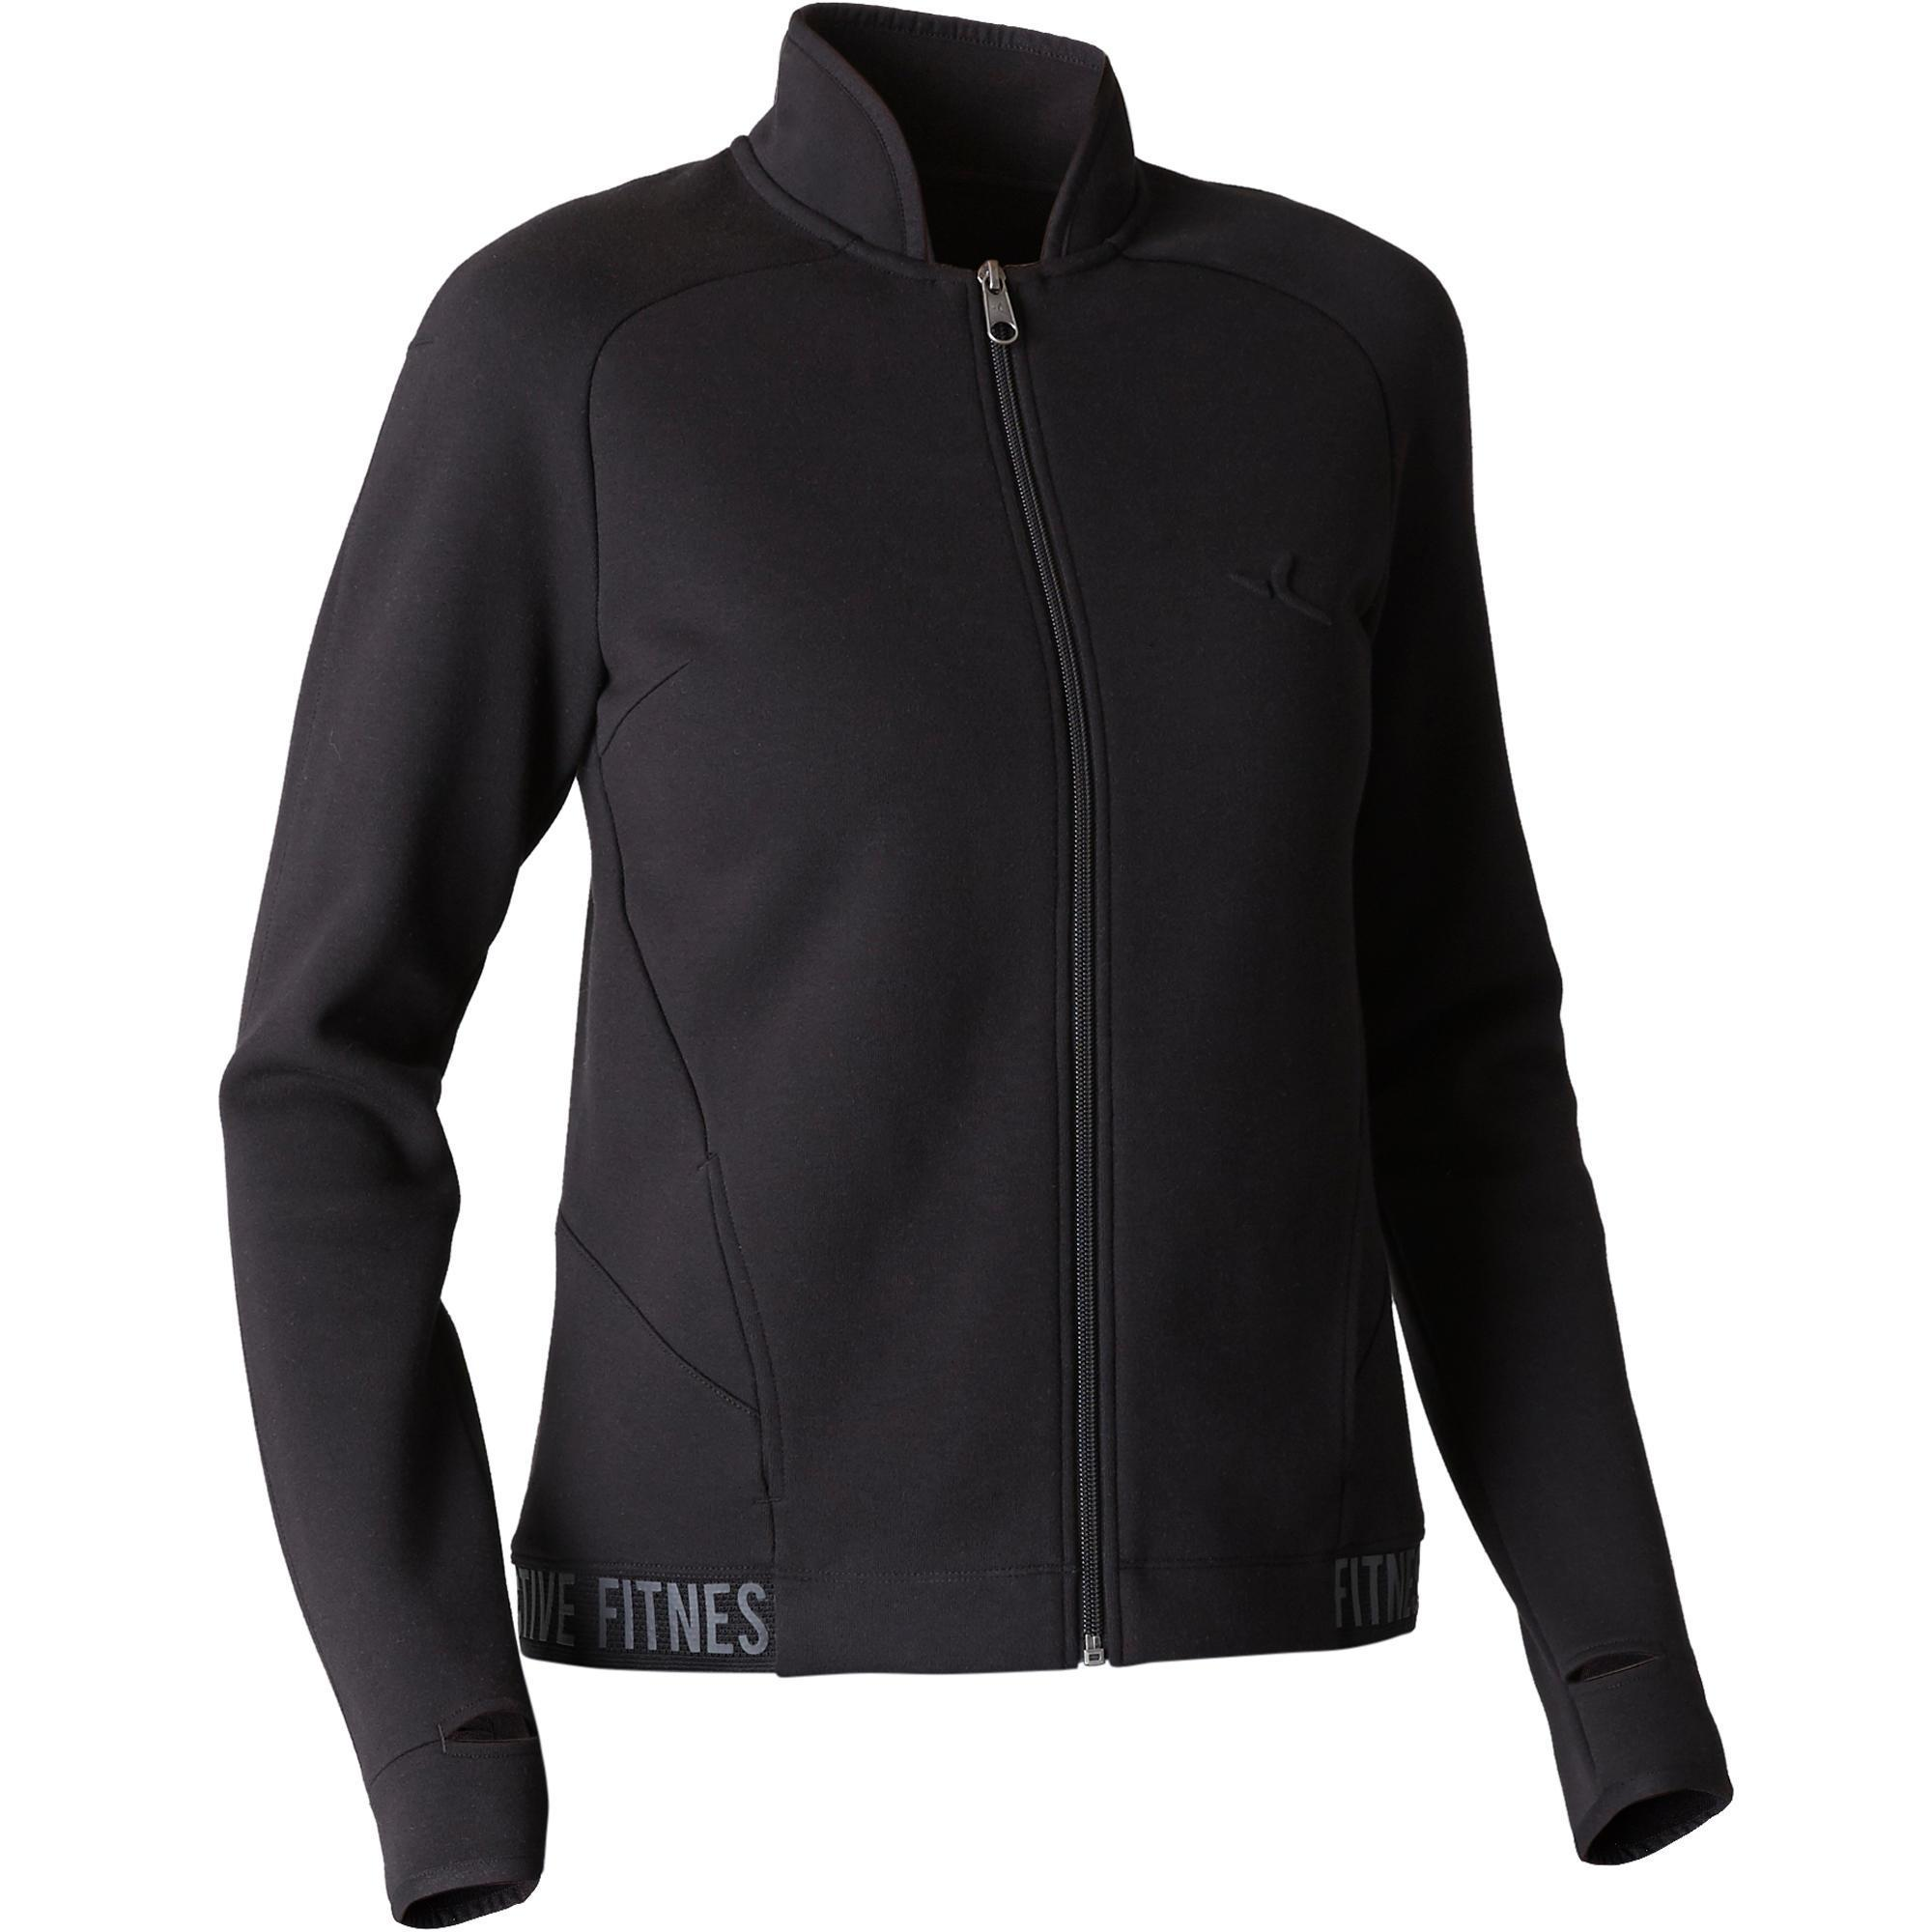 Trainingsjacke 900 Gym Stretching Damen schwarz | Sportbekleidung > Sportjacken > Trainingsjacken | Domyos